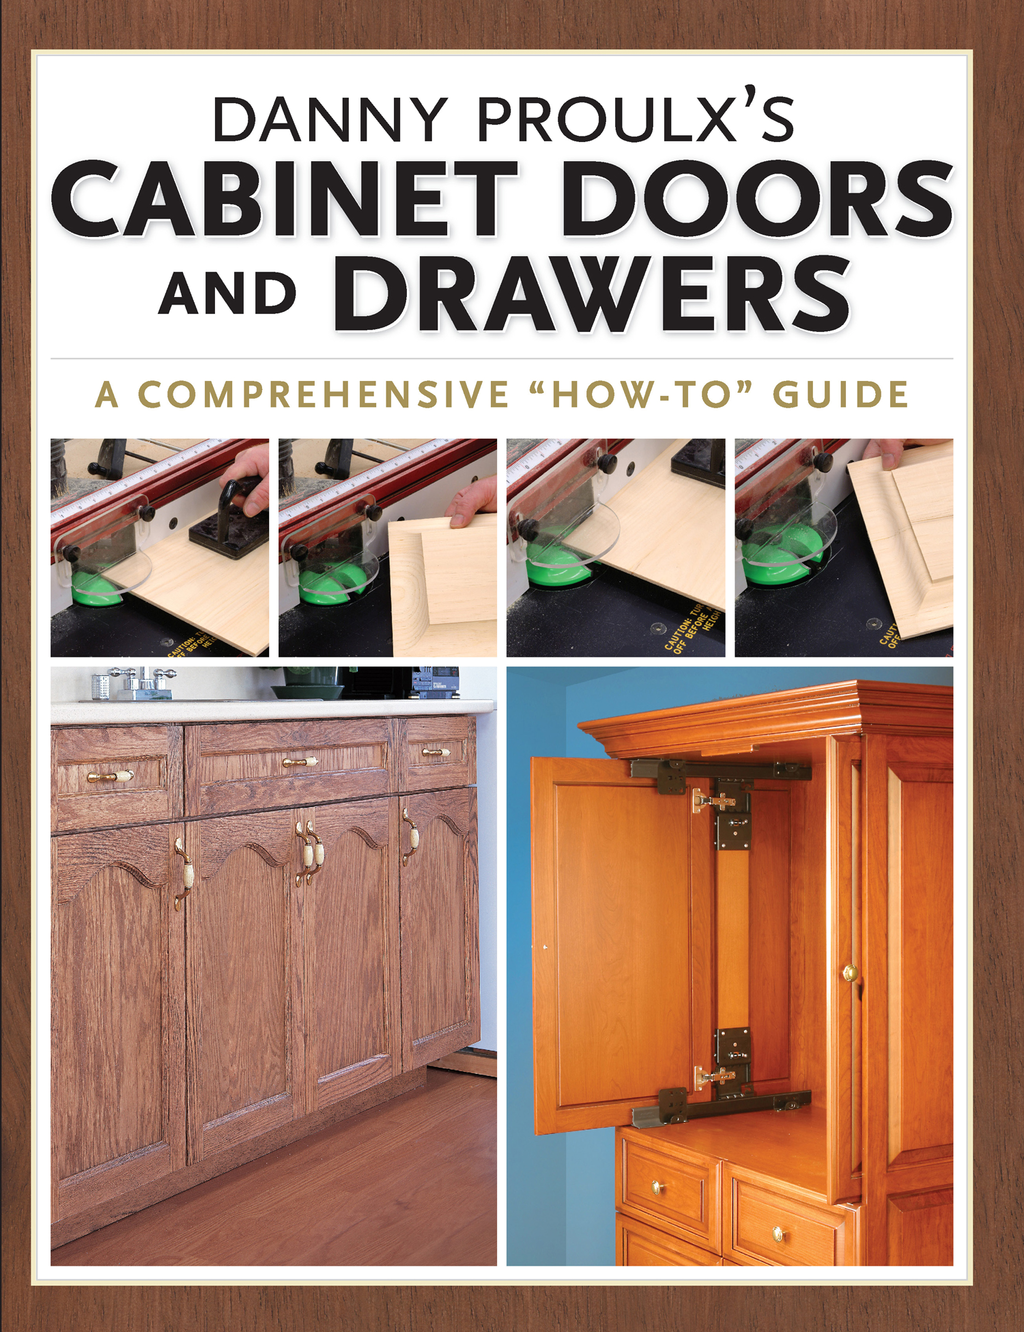 Danny Proulx's Cabinet Doors and Drawers